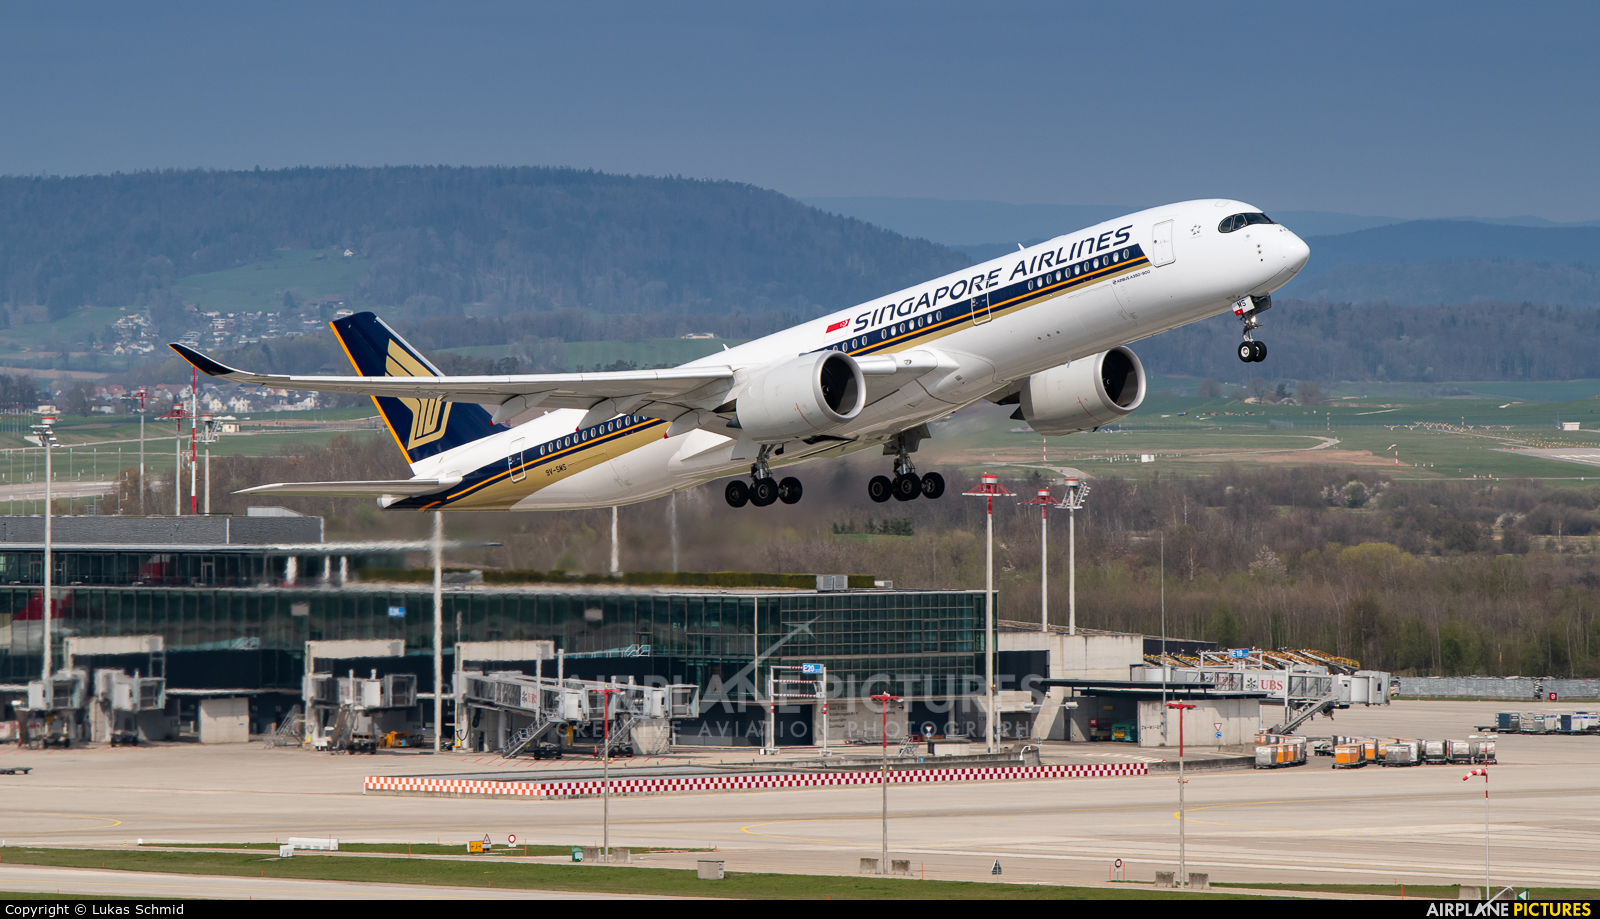 Singapore Airlines 9V-SMS aircraft at Zurich